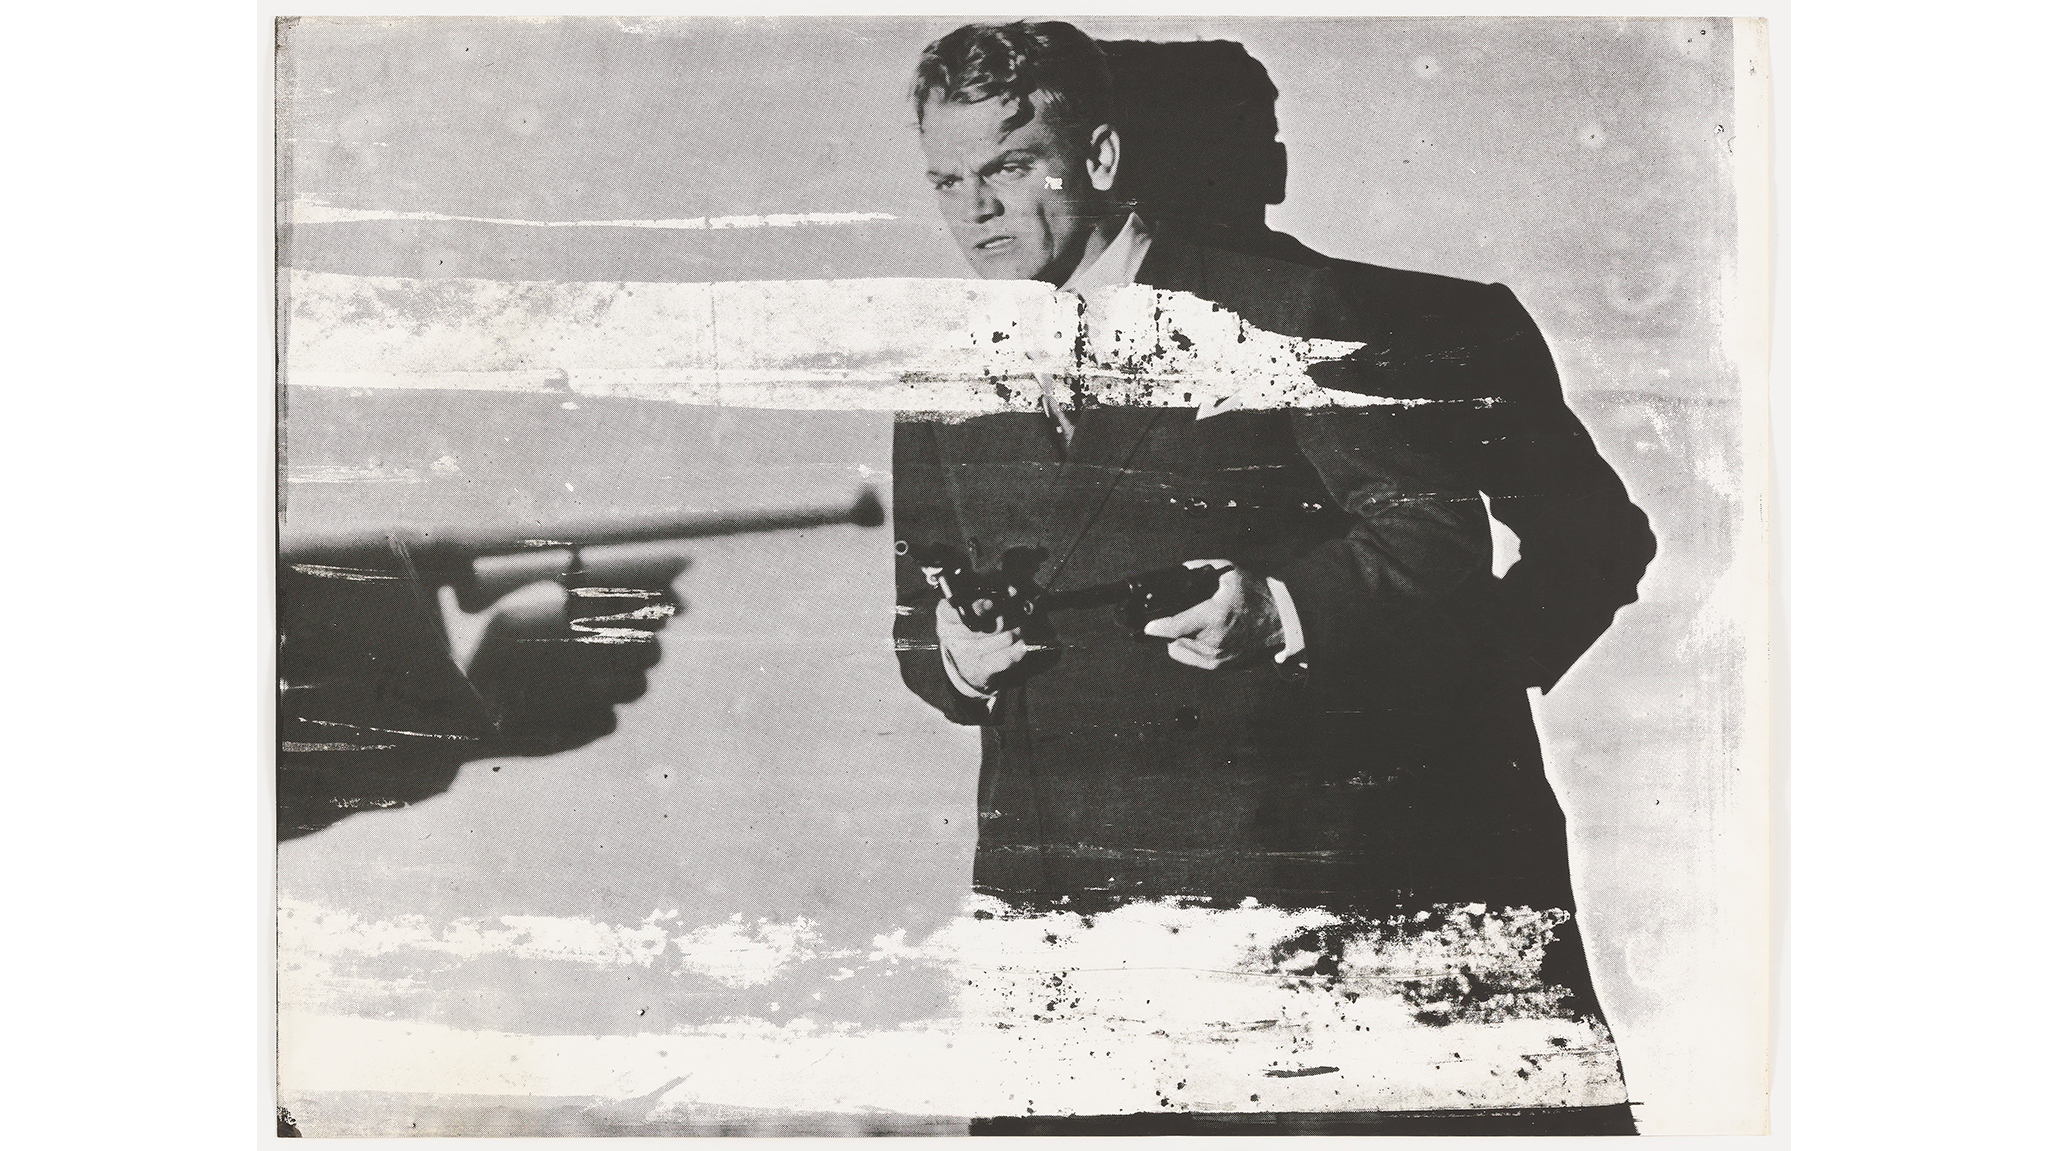 Andy Warhol, Cagney, 1962